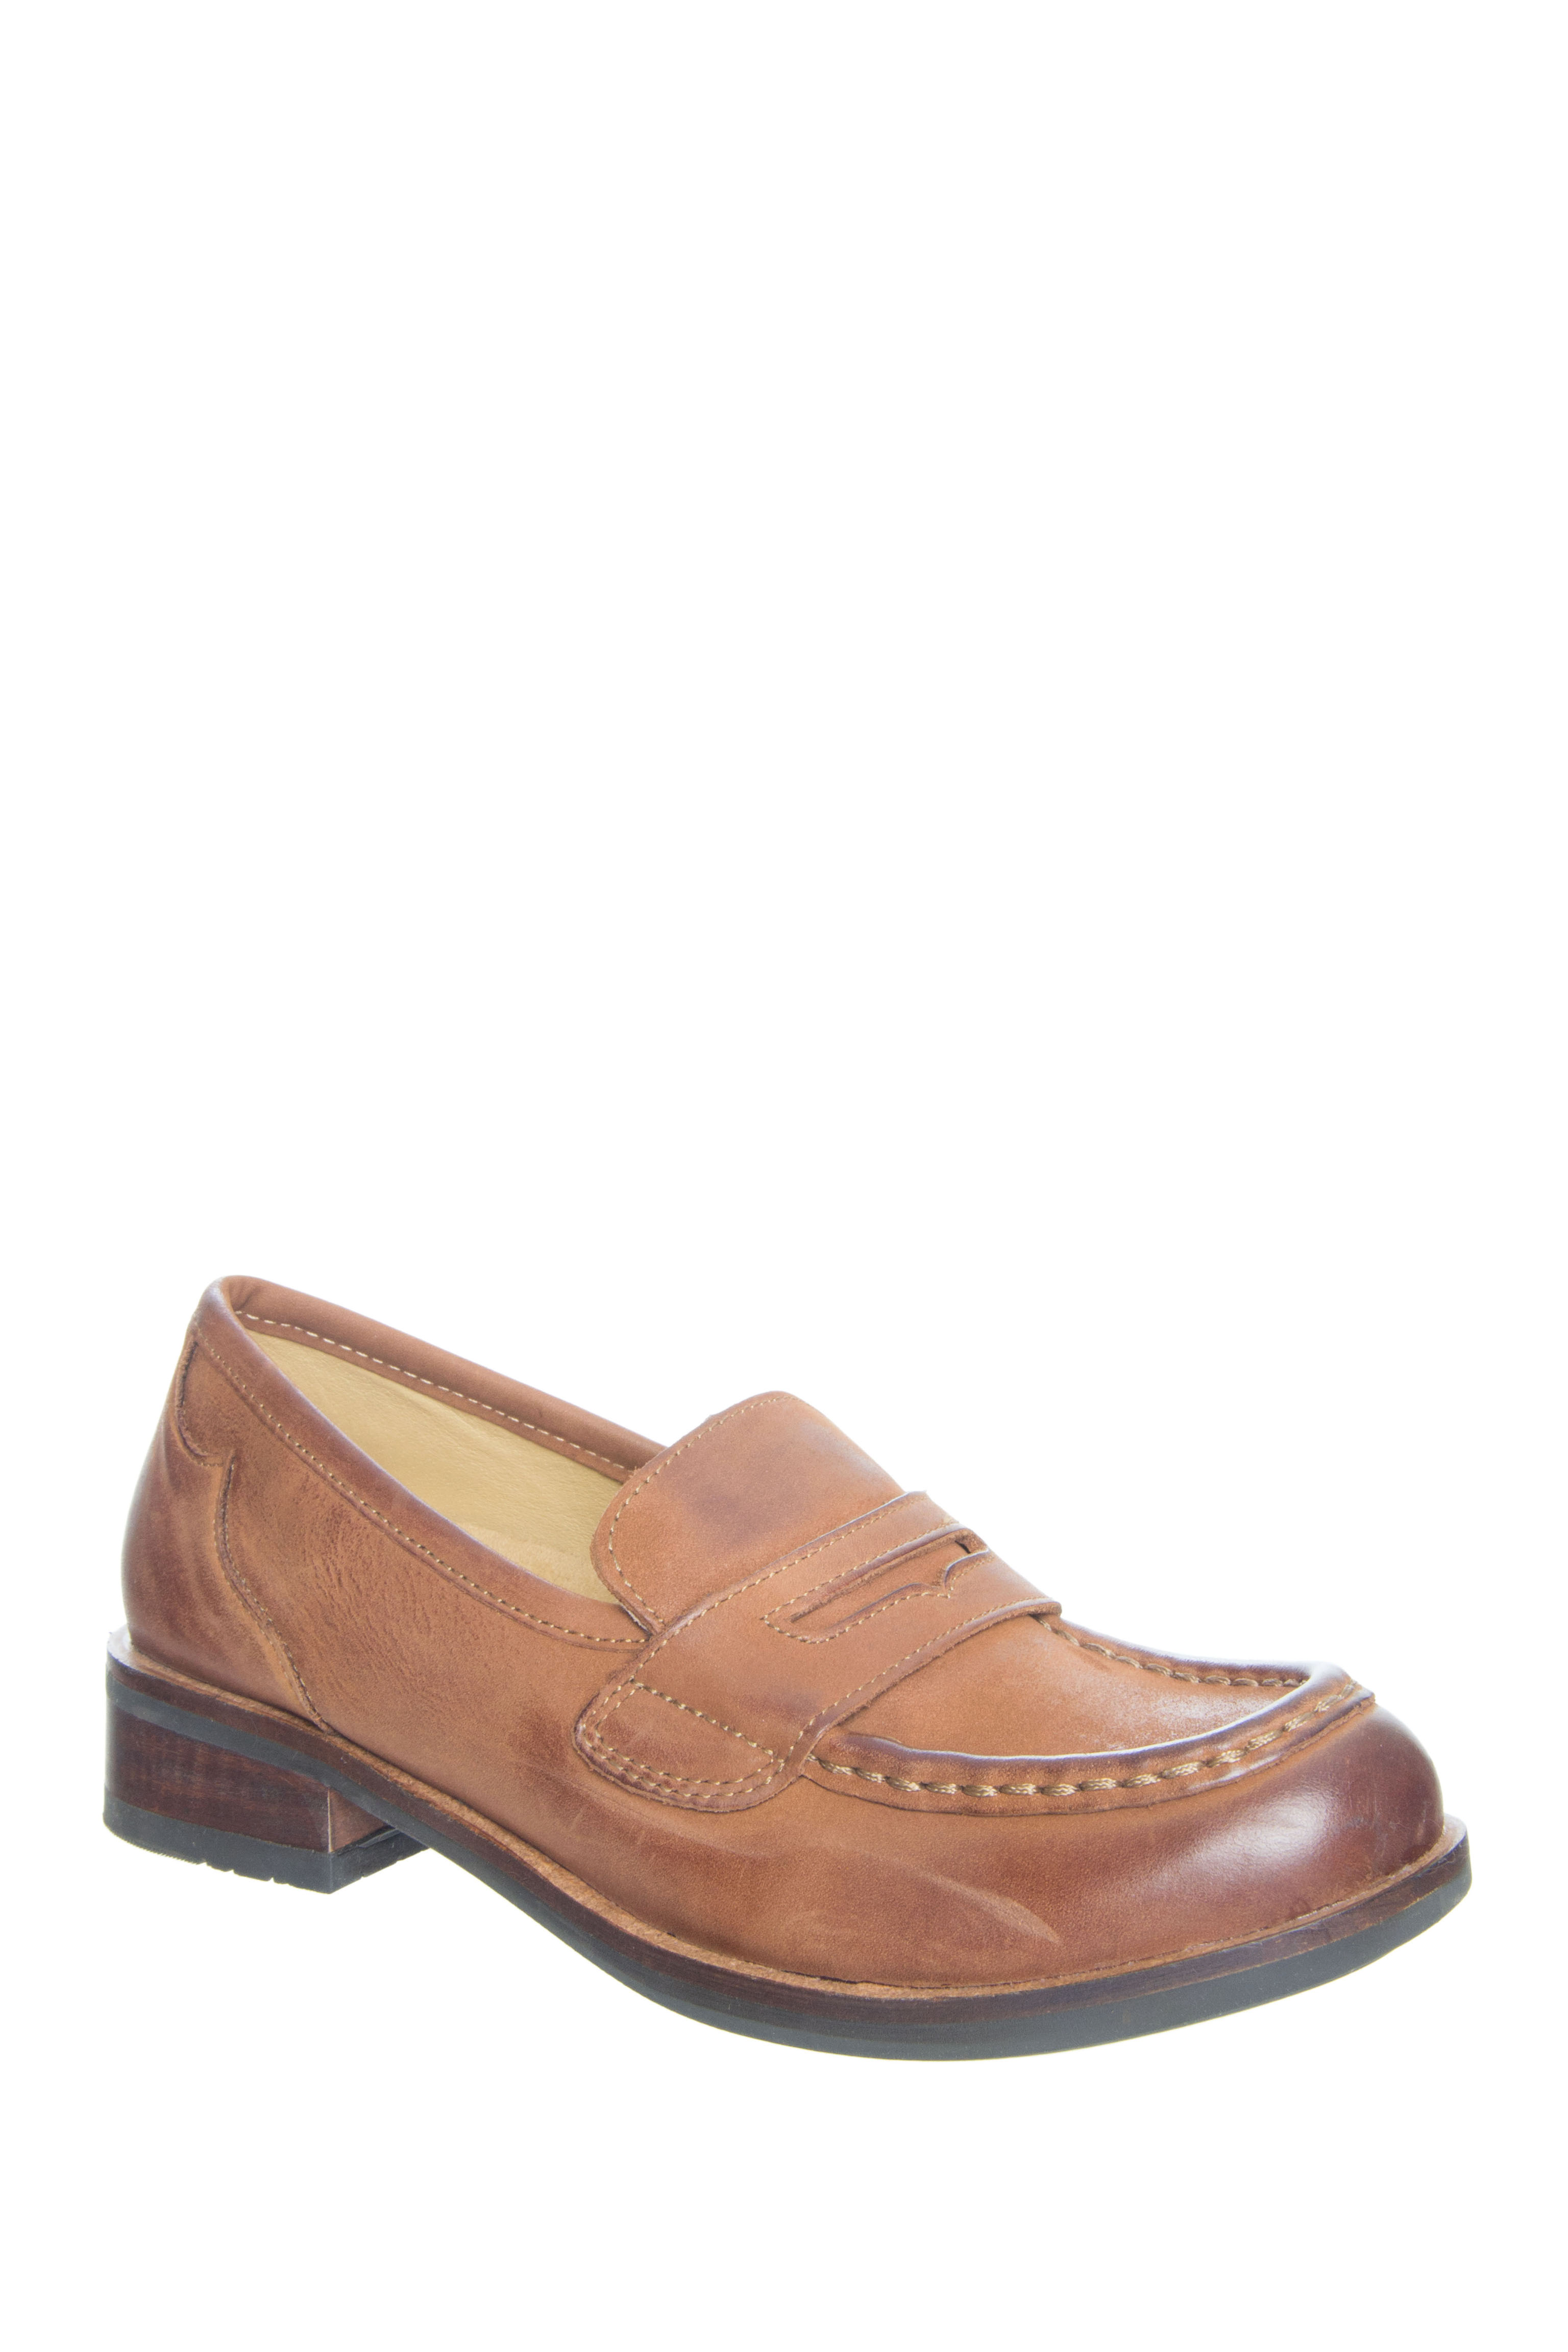 Bussola Nancy Low Heel Loafers - Cognac